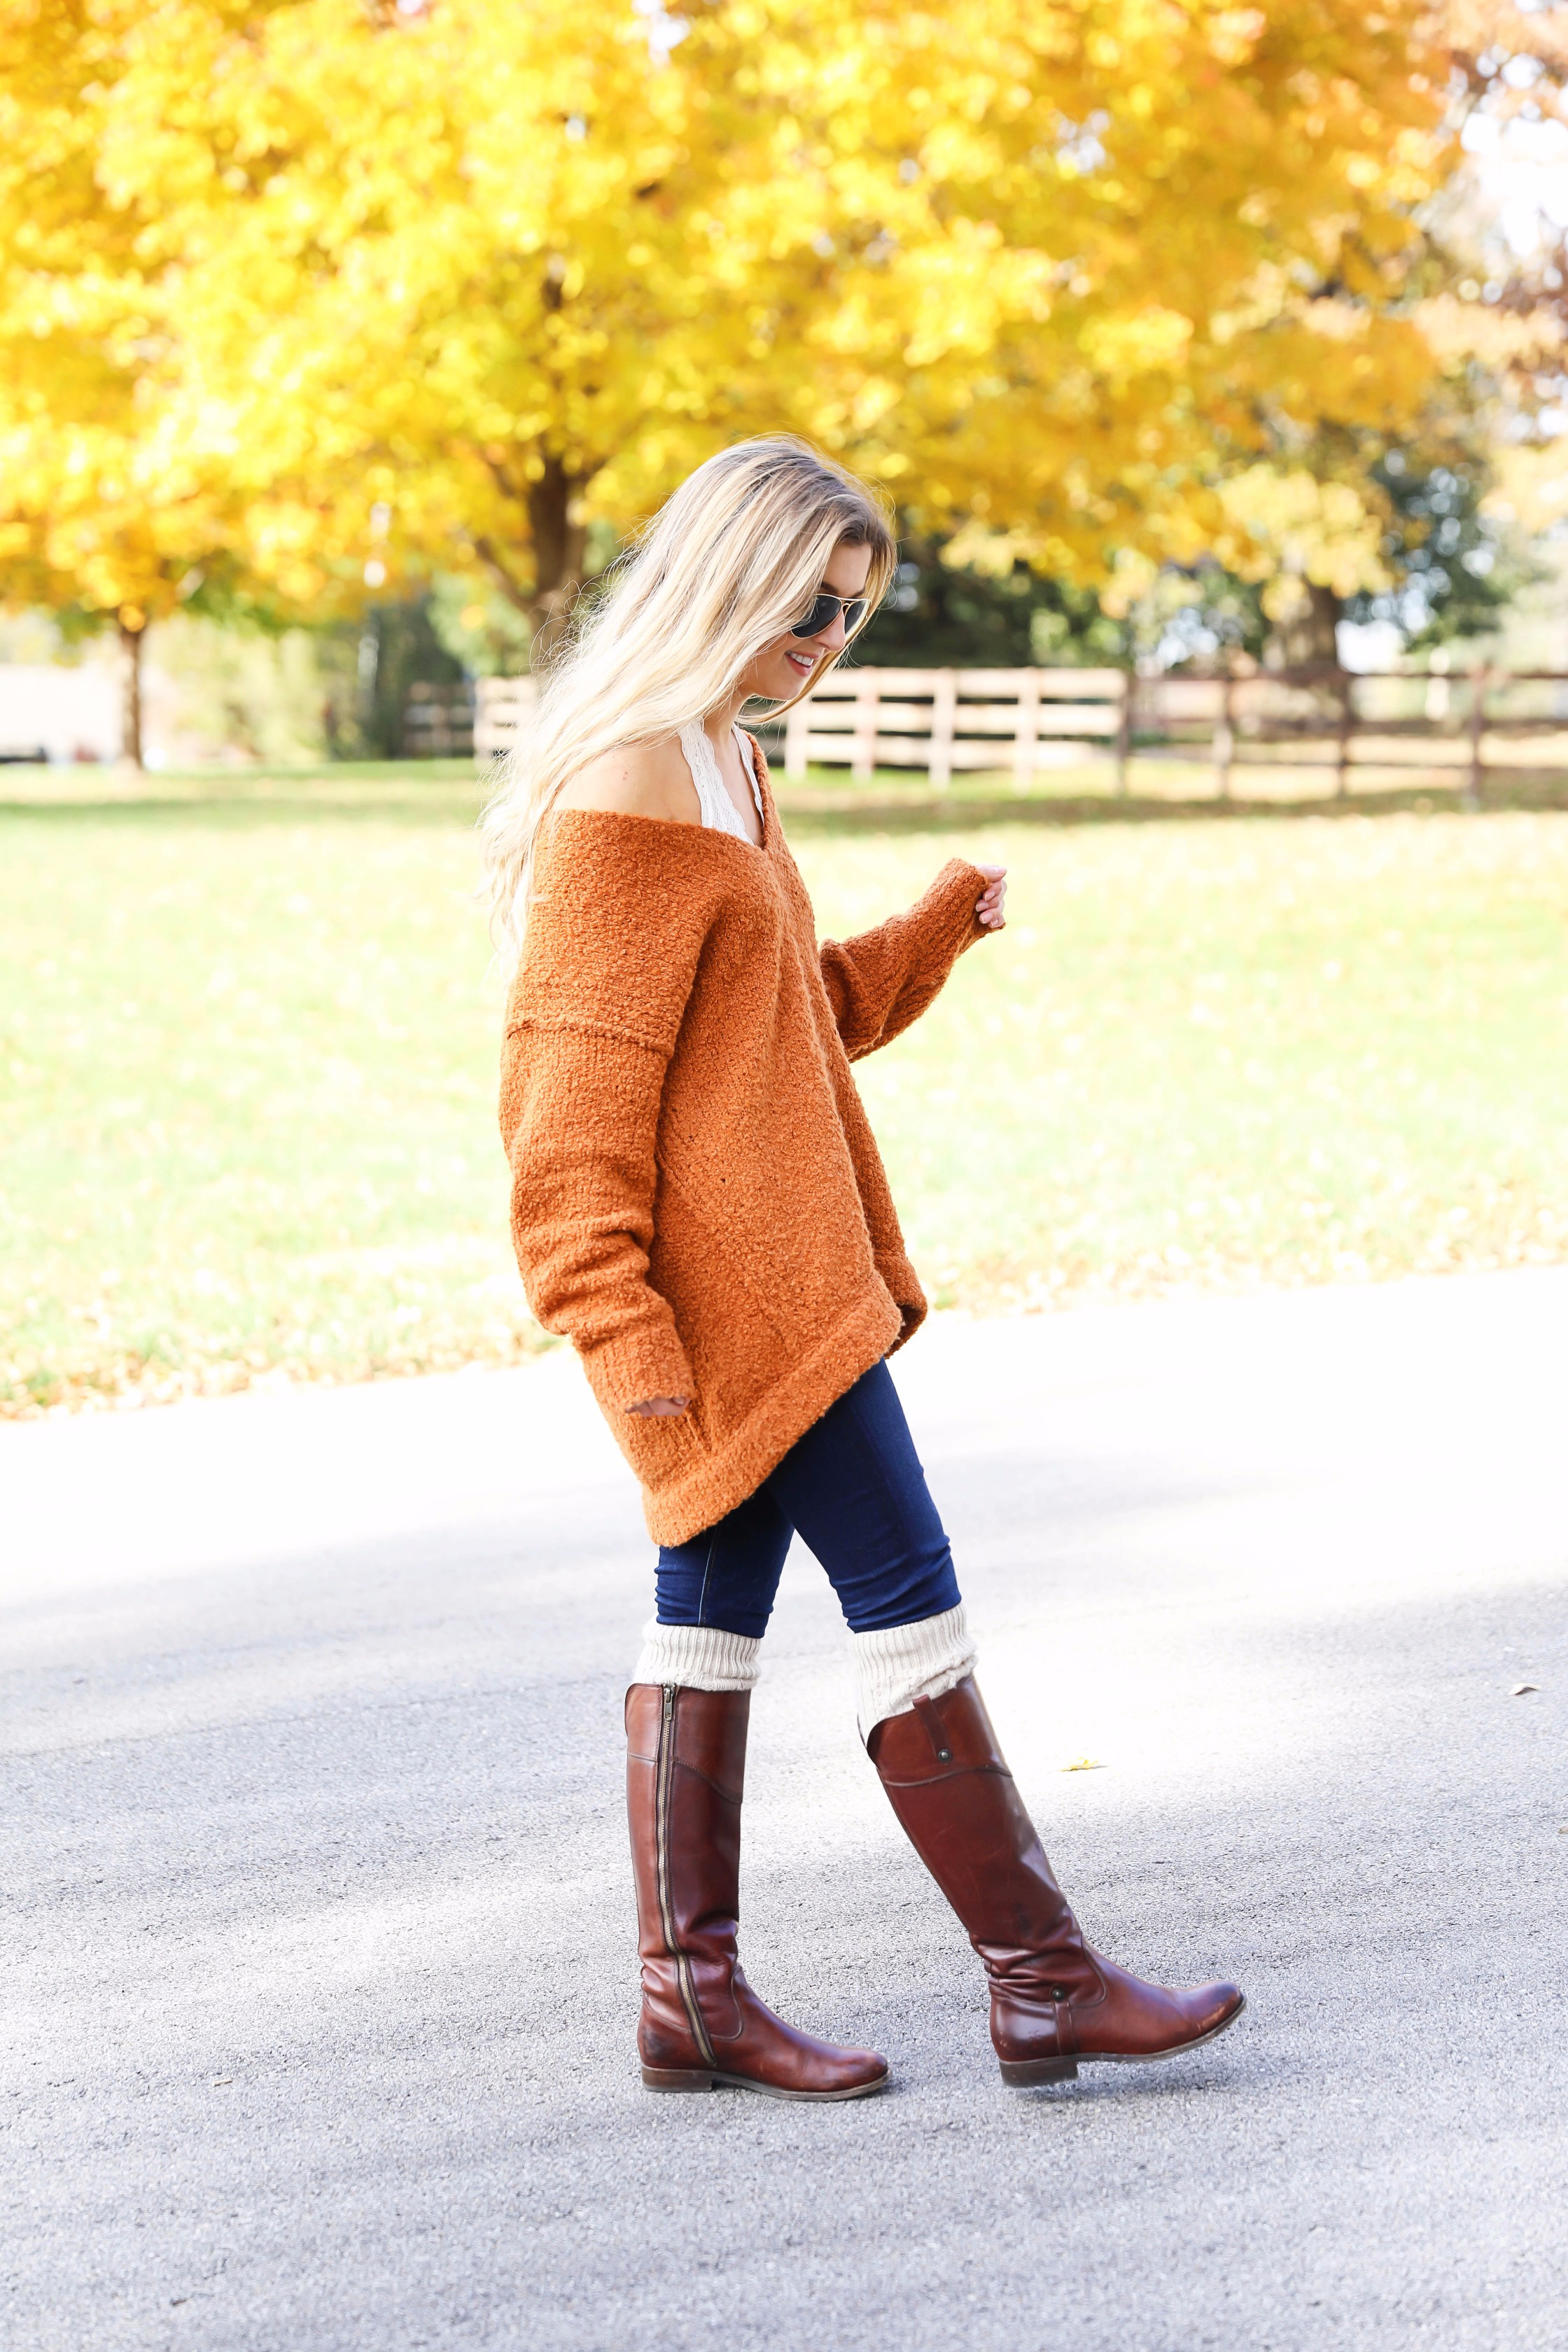 Burnt orange soft free people sweater paired with frye boots and cable knit socks. Fall fashion inspiration! Get details on daily dose of charm fashion blog lauren lindmark